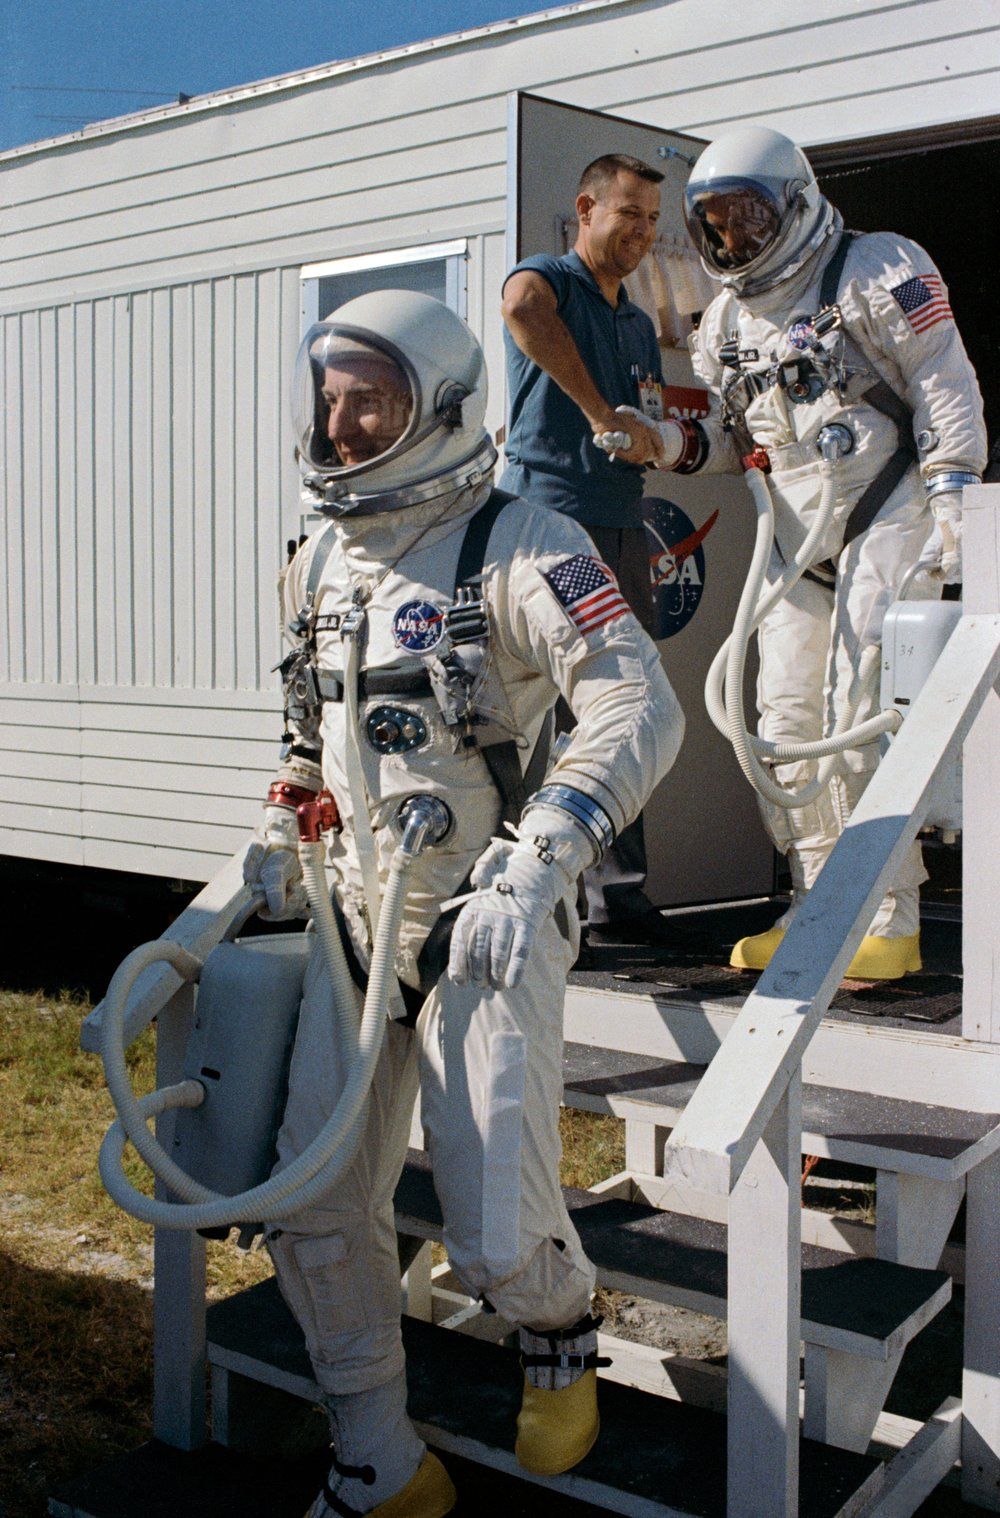 Prime Crew for NASA's Gemini 12 space flight